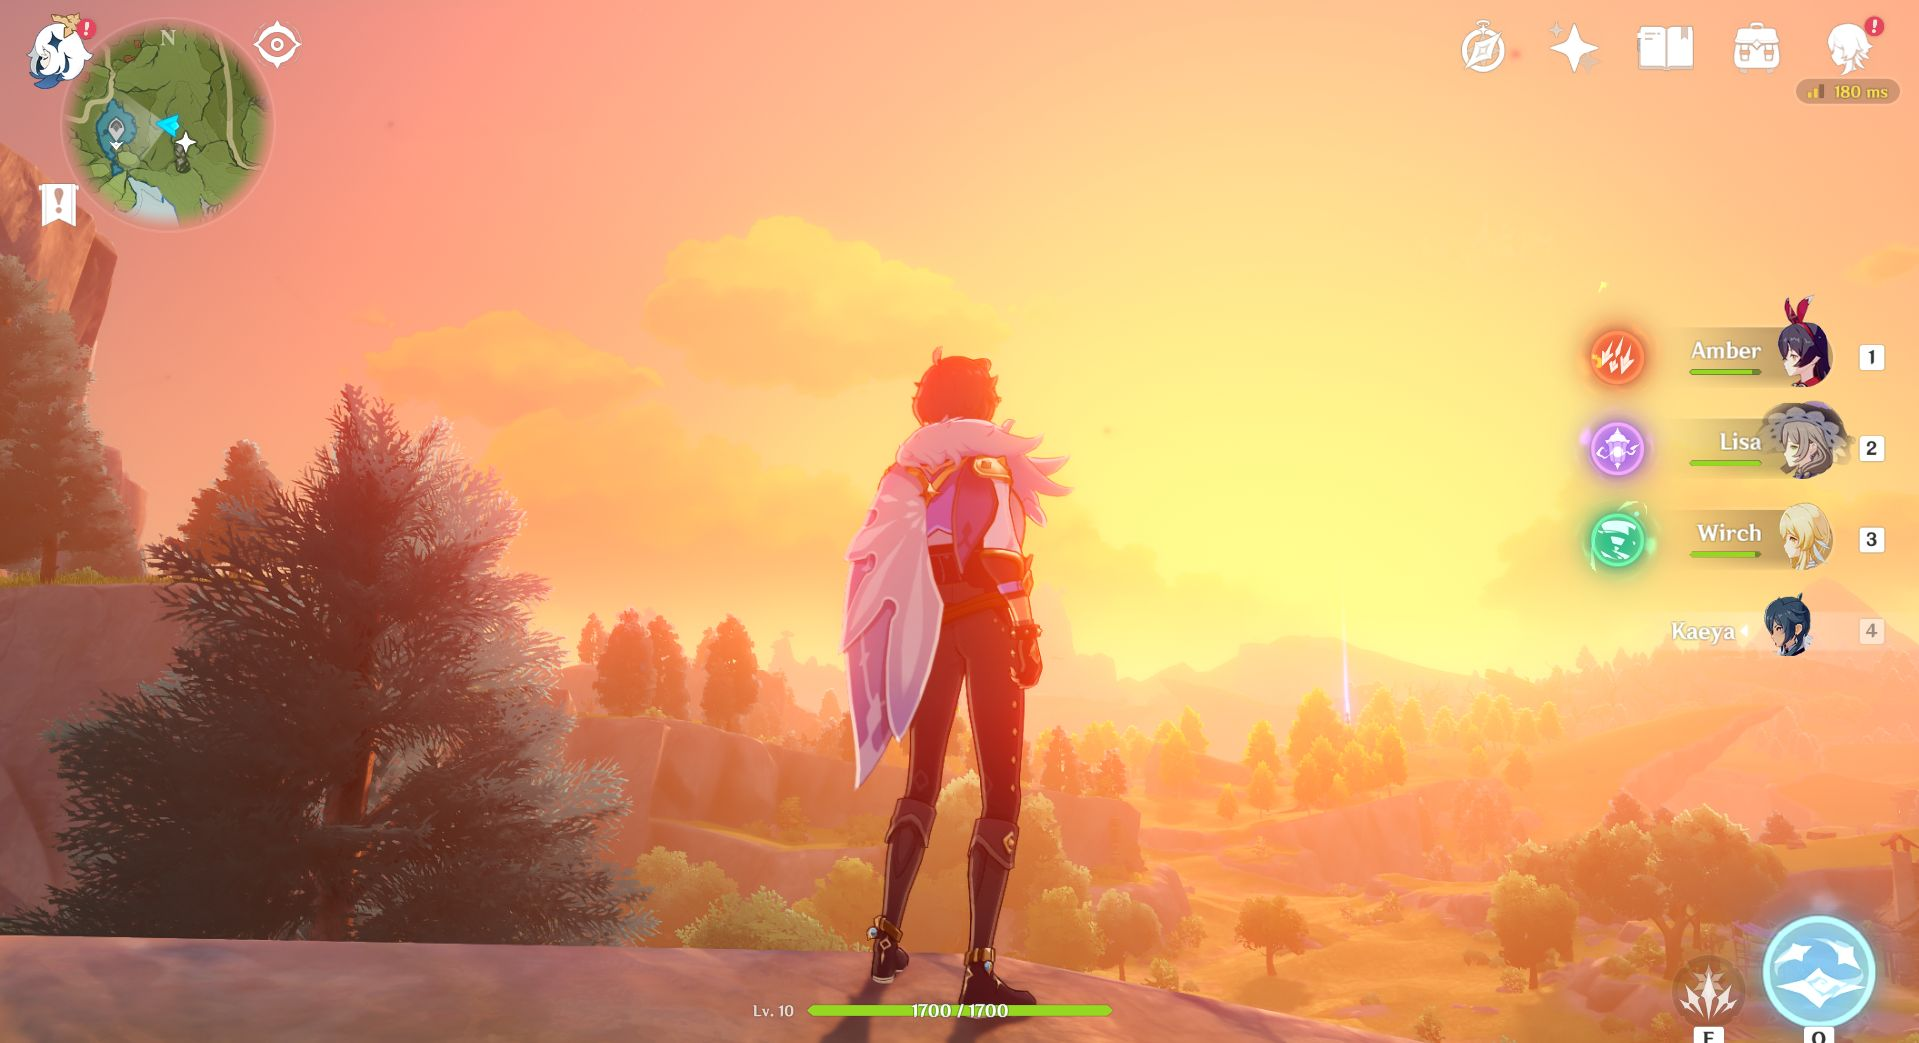 Genshin Impact Beginner's Guide to Exploration – How to Move Around and Survive in the Wild